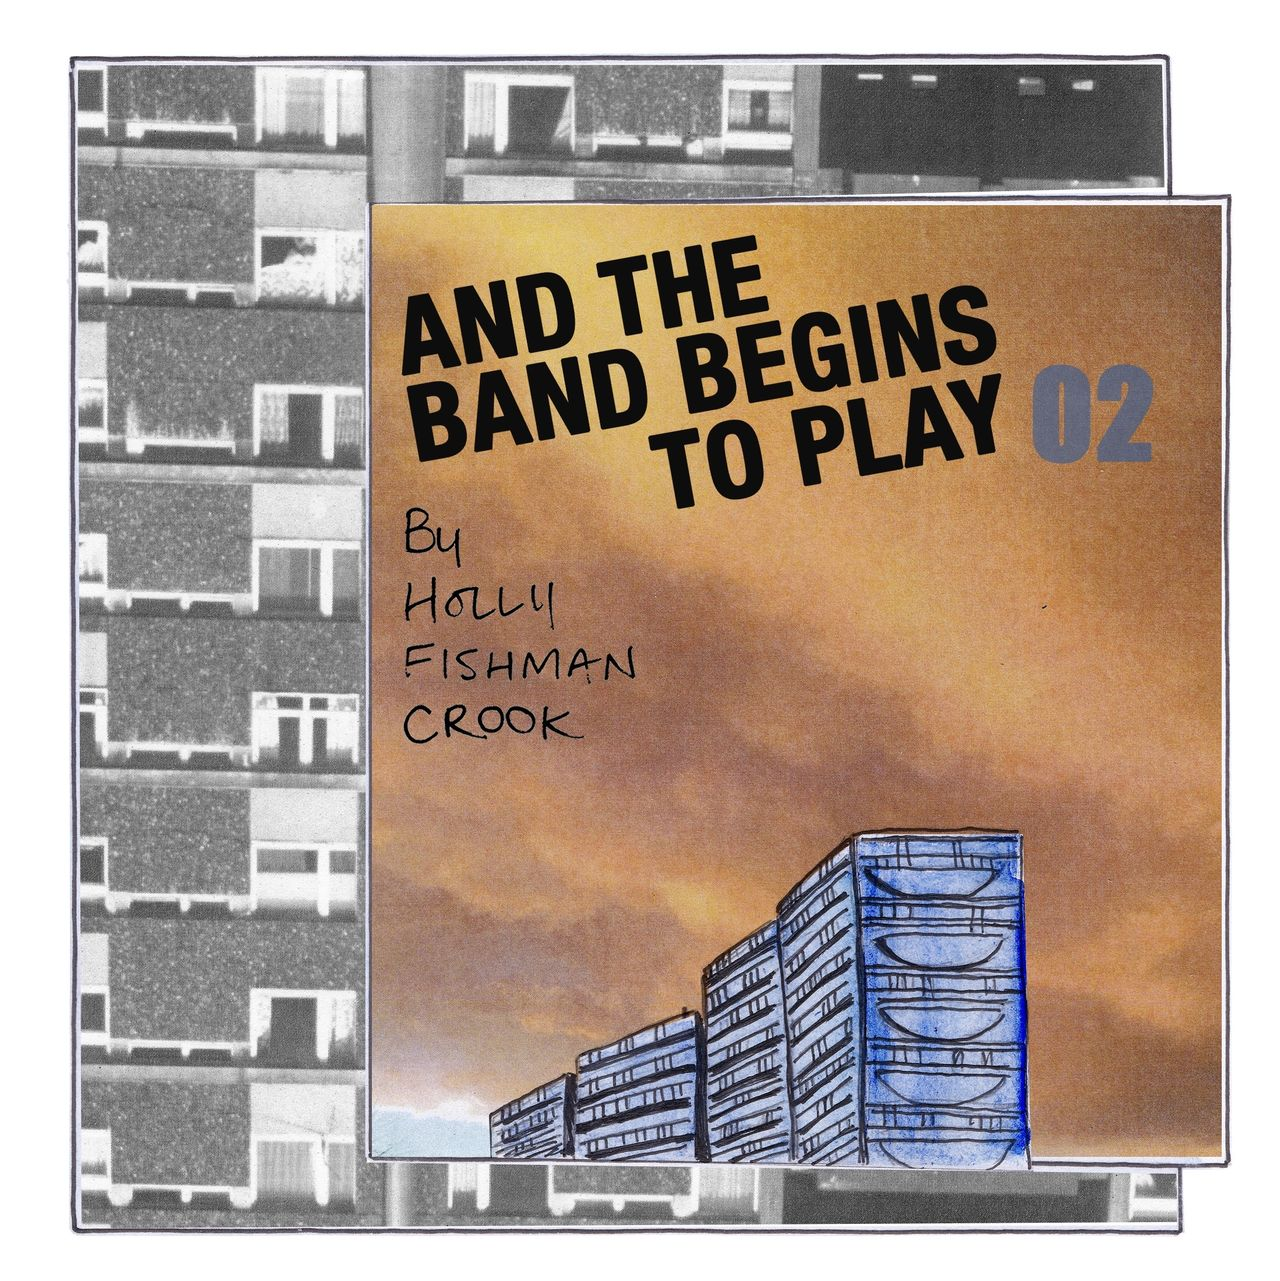 """Webcomic chapter two's front page. Made up of a collage of high rise towers. The words """"And the band begins to play part 2"""" is superimposed over the top."""